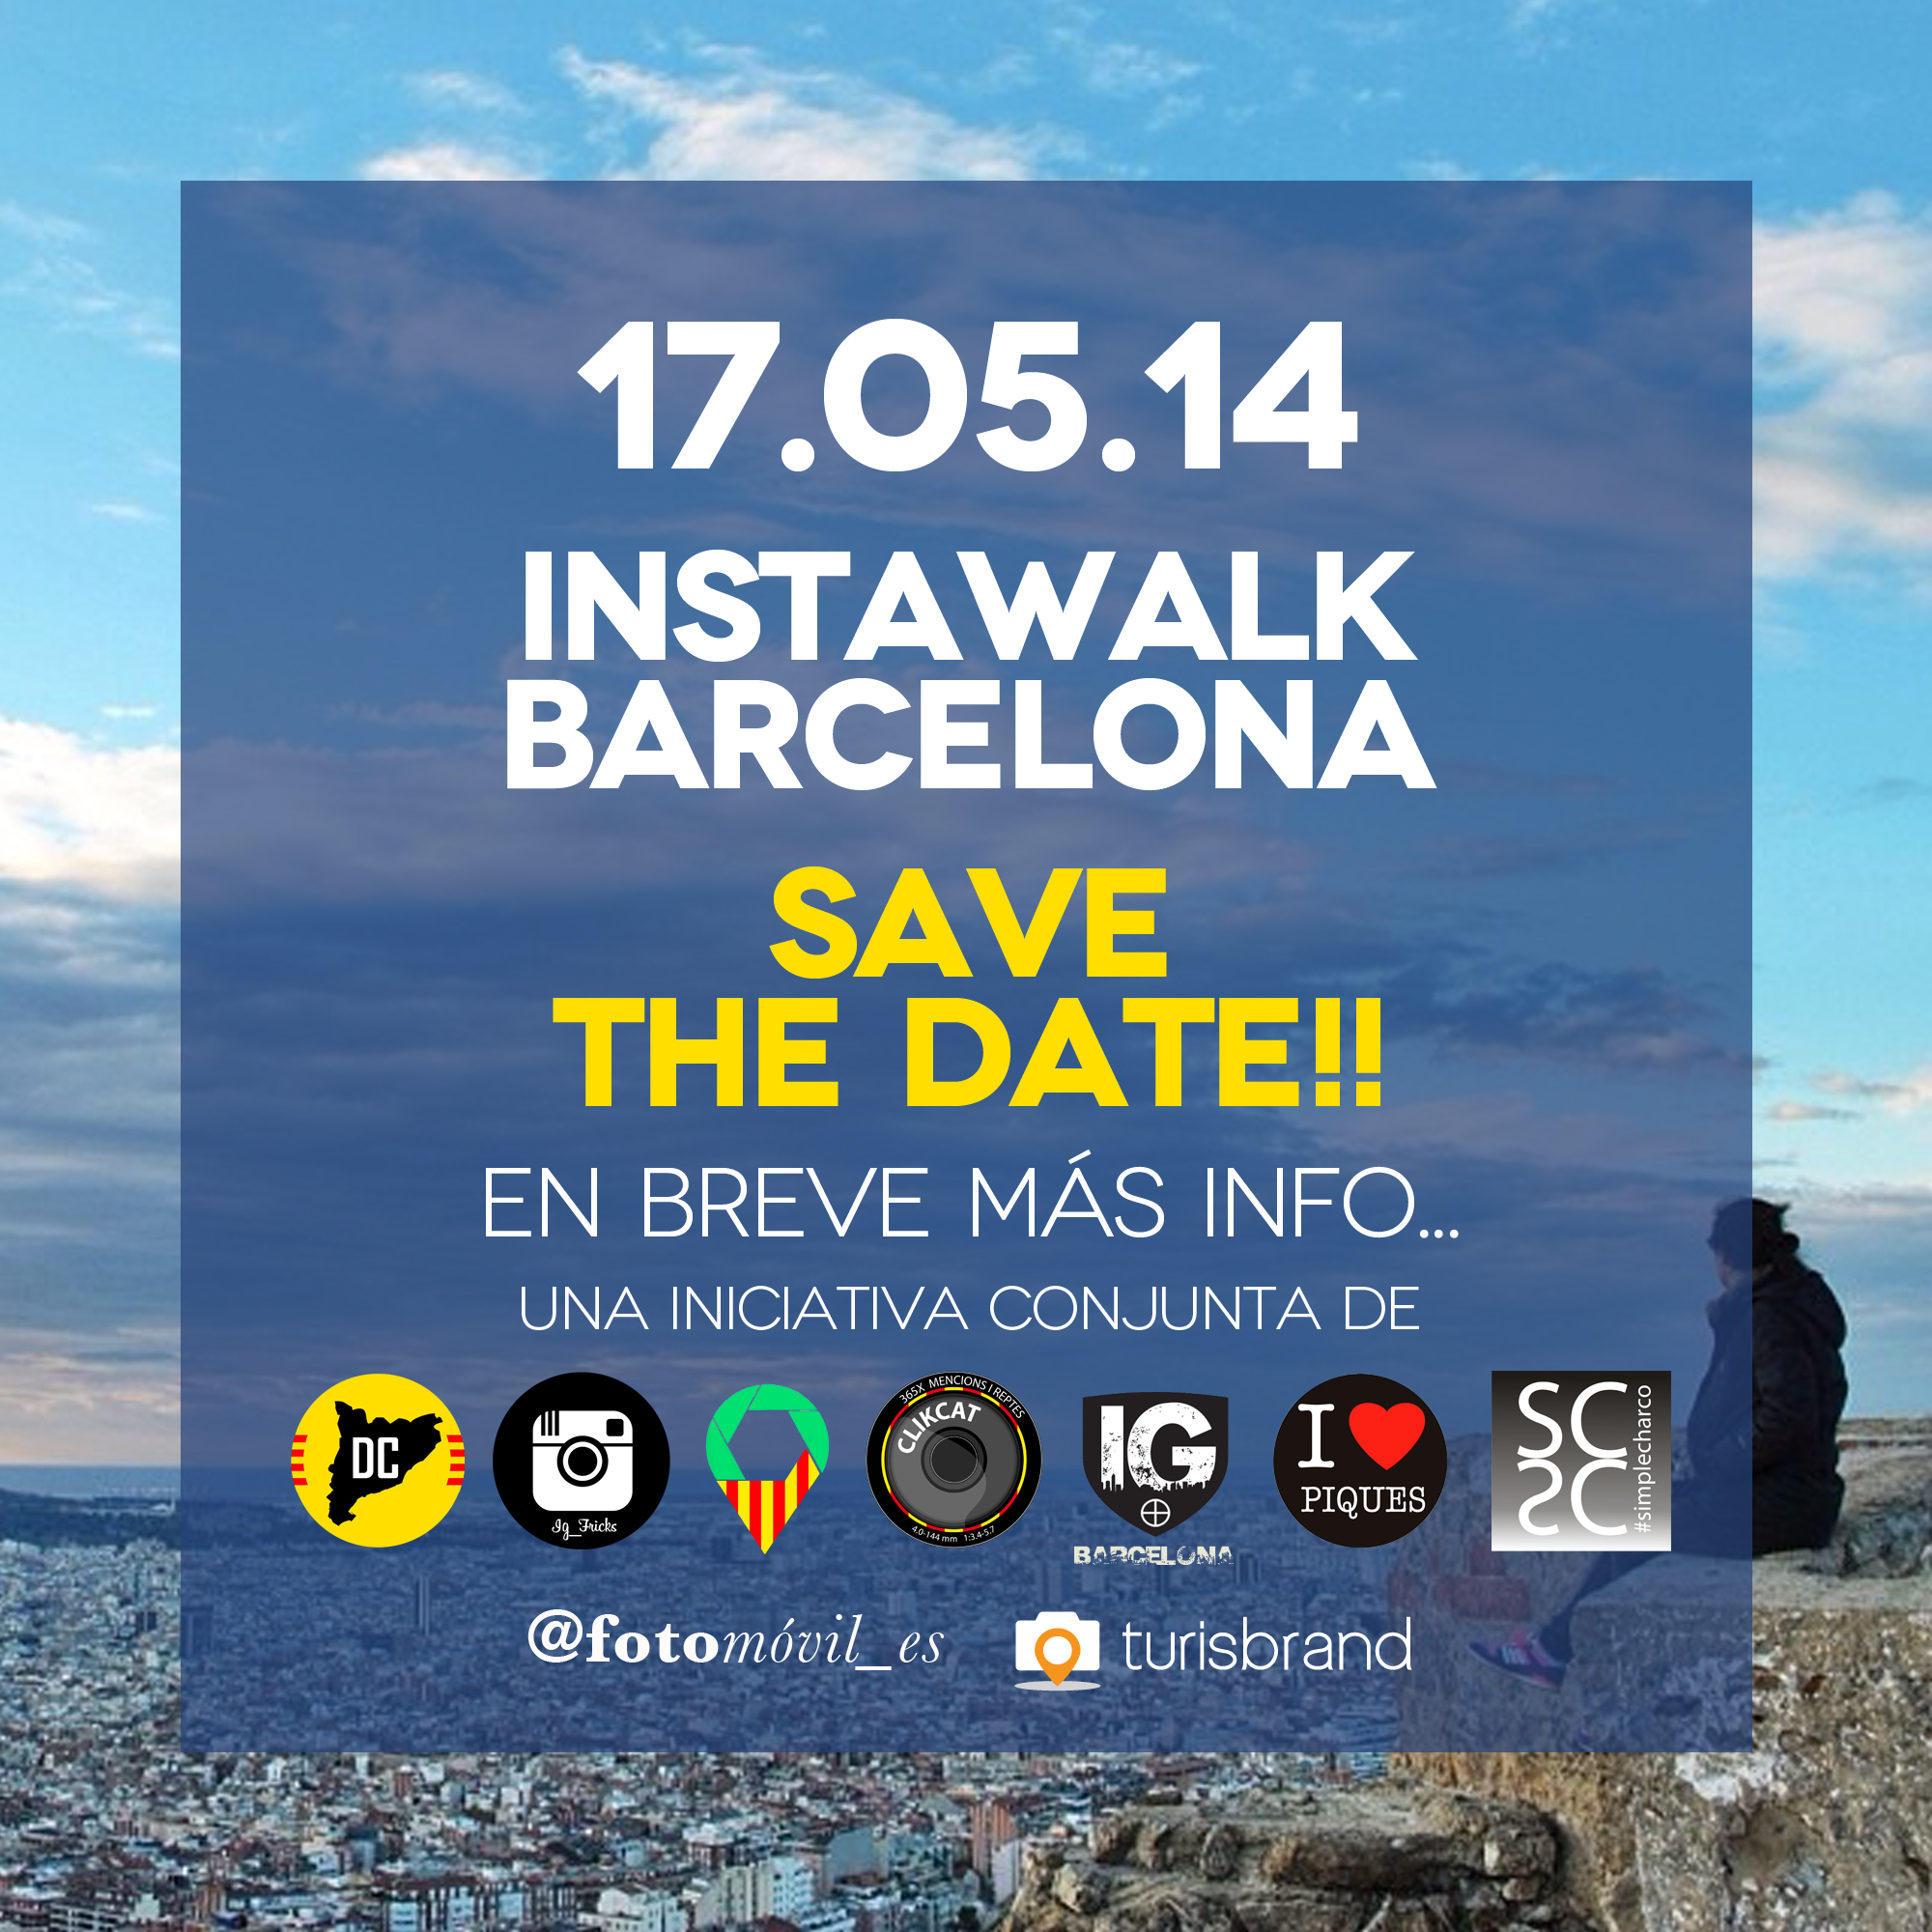 instawalk-barcelona-save-the-date2